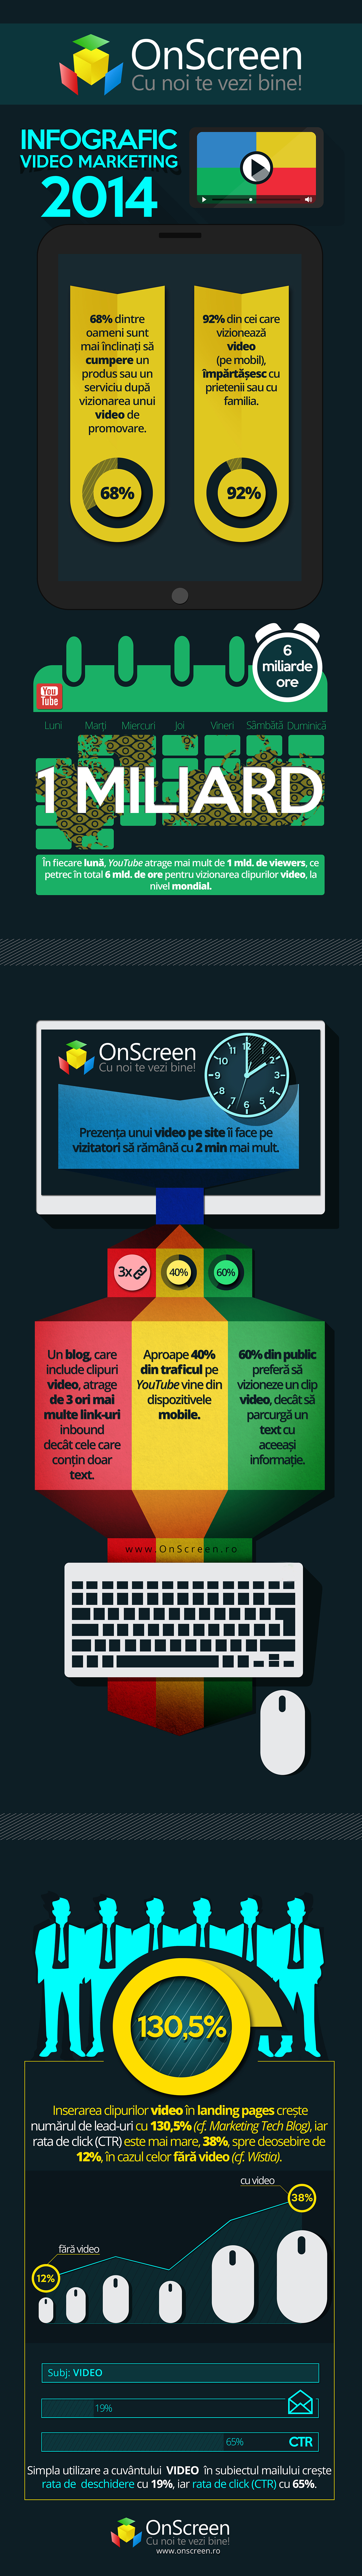 infografic_video_marketing_onscreen_vertical_m